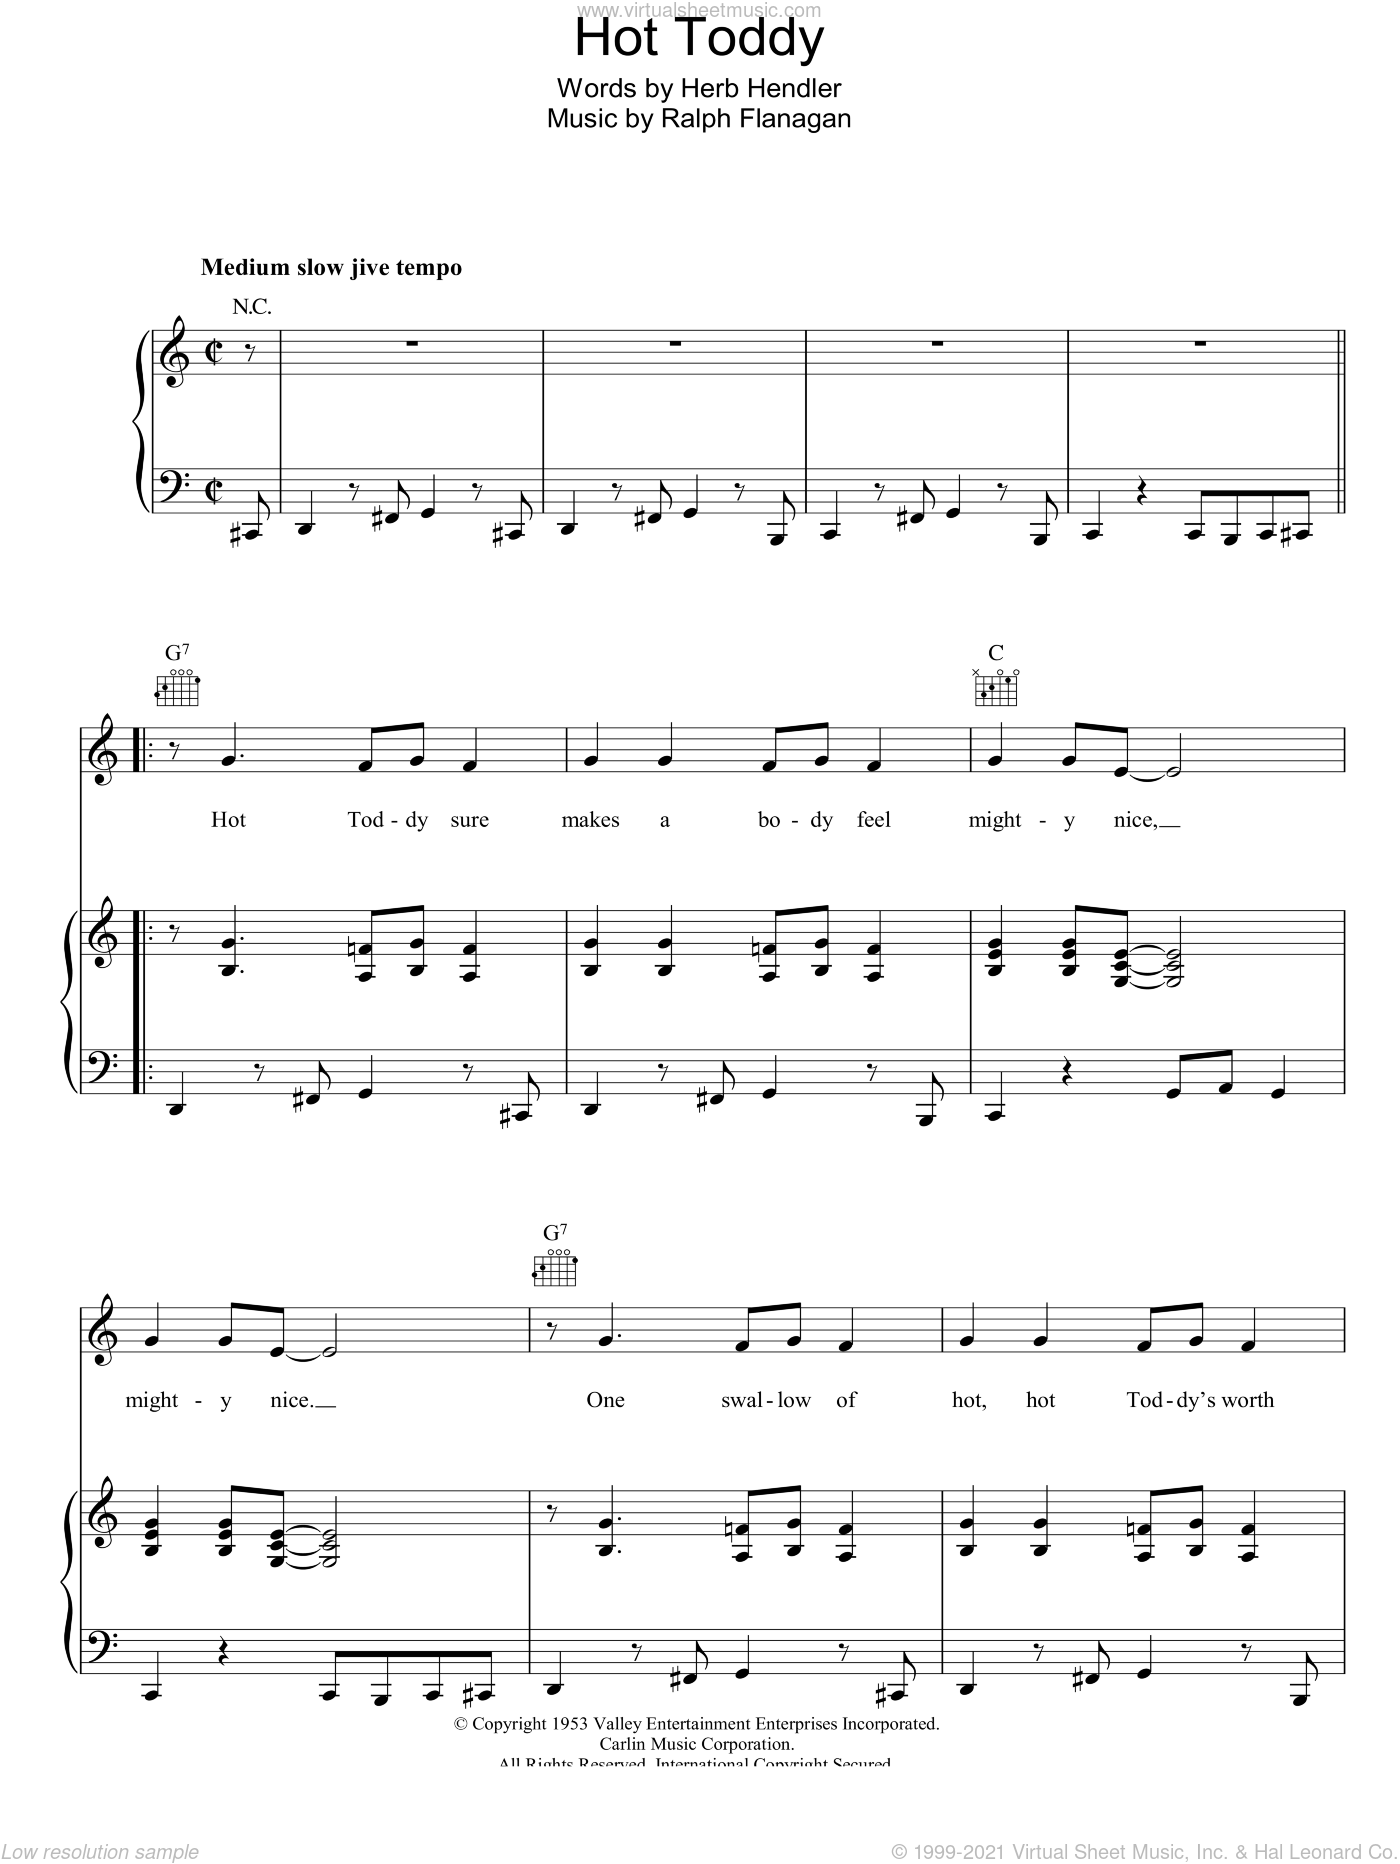 Hot Toddy sheet music for voice, piano or guitar by Ralph Flanagan and Herb Hendler, intermediate skill level